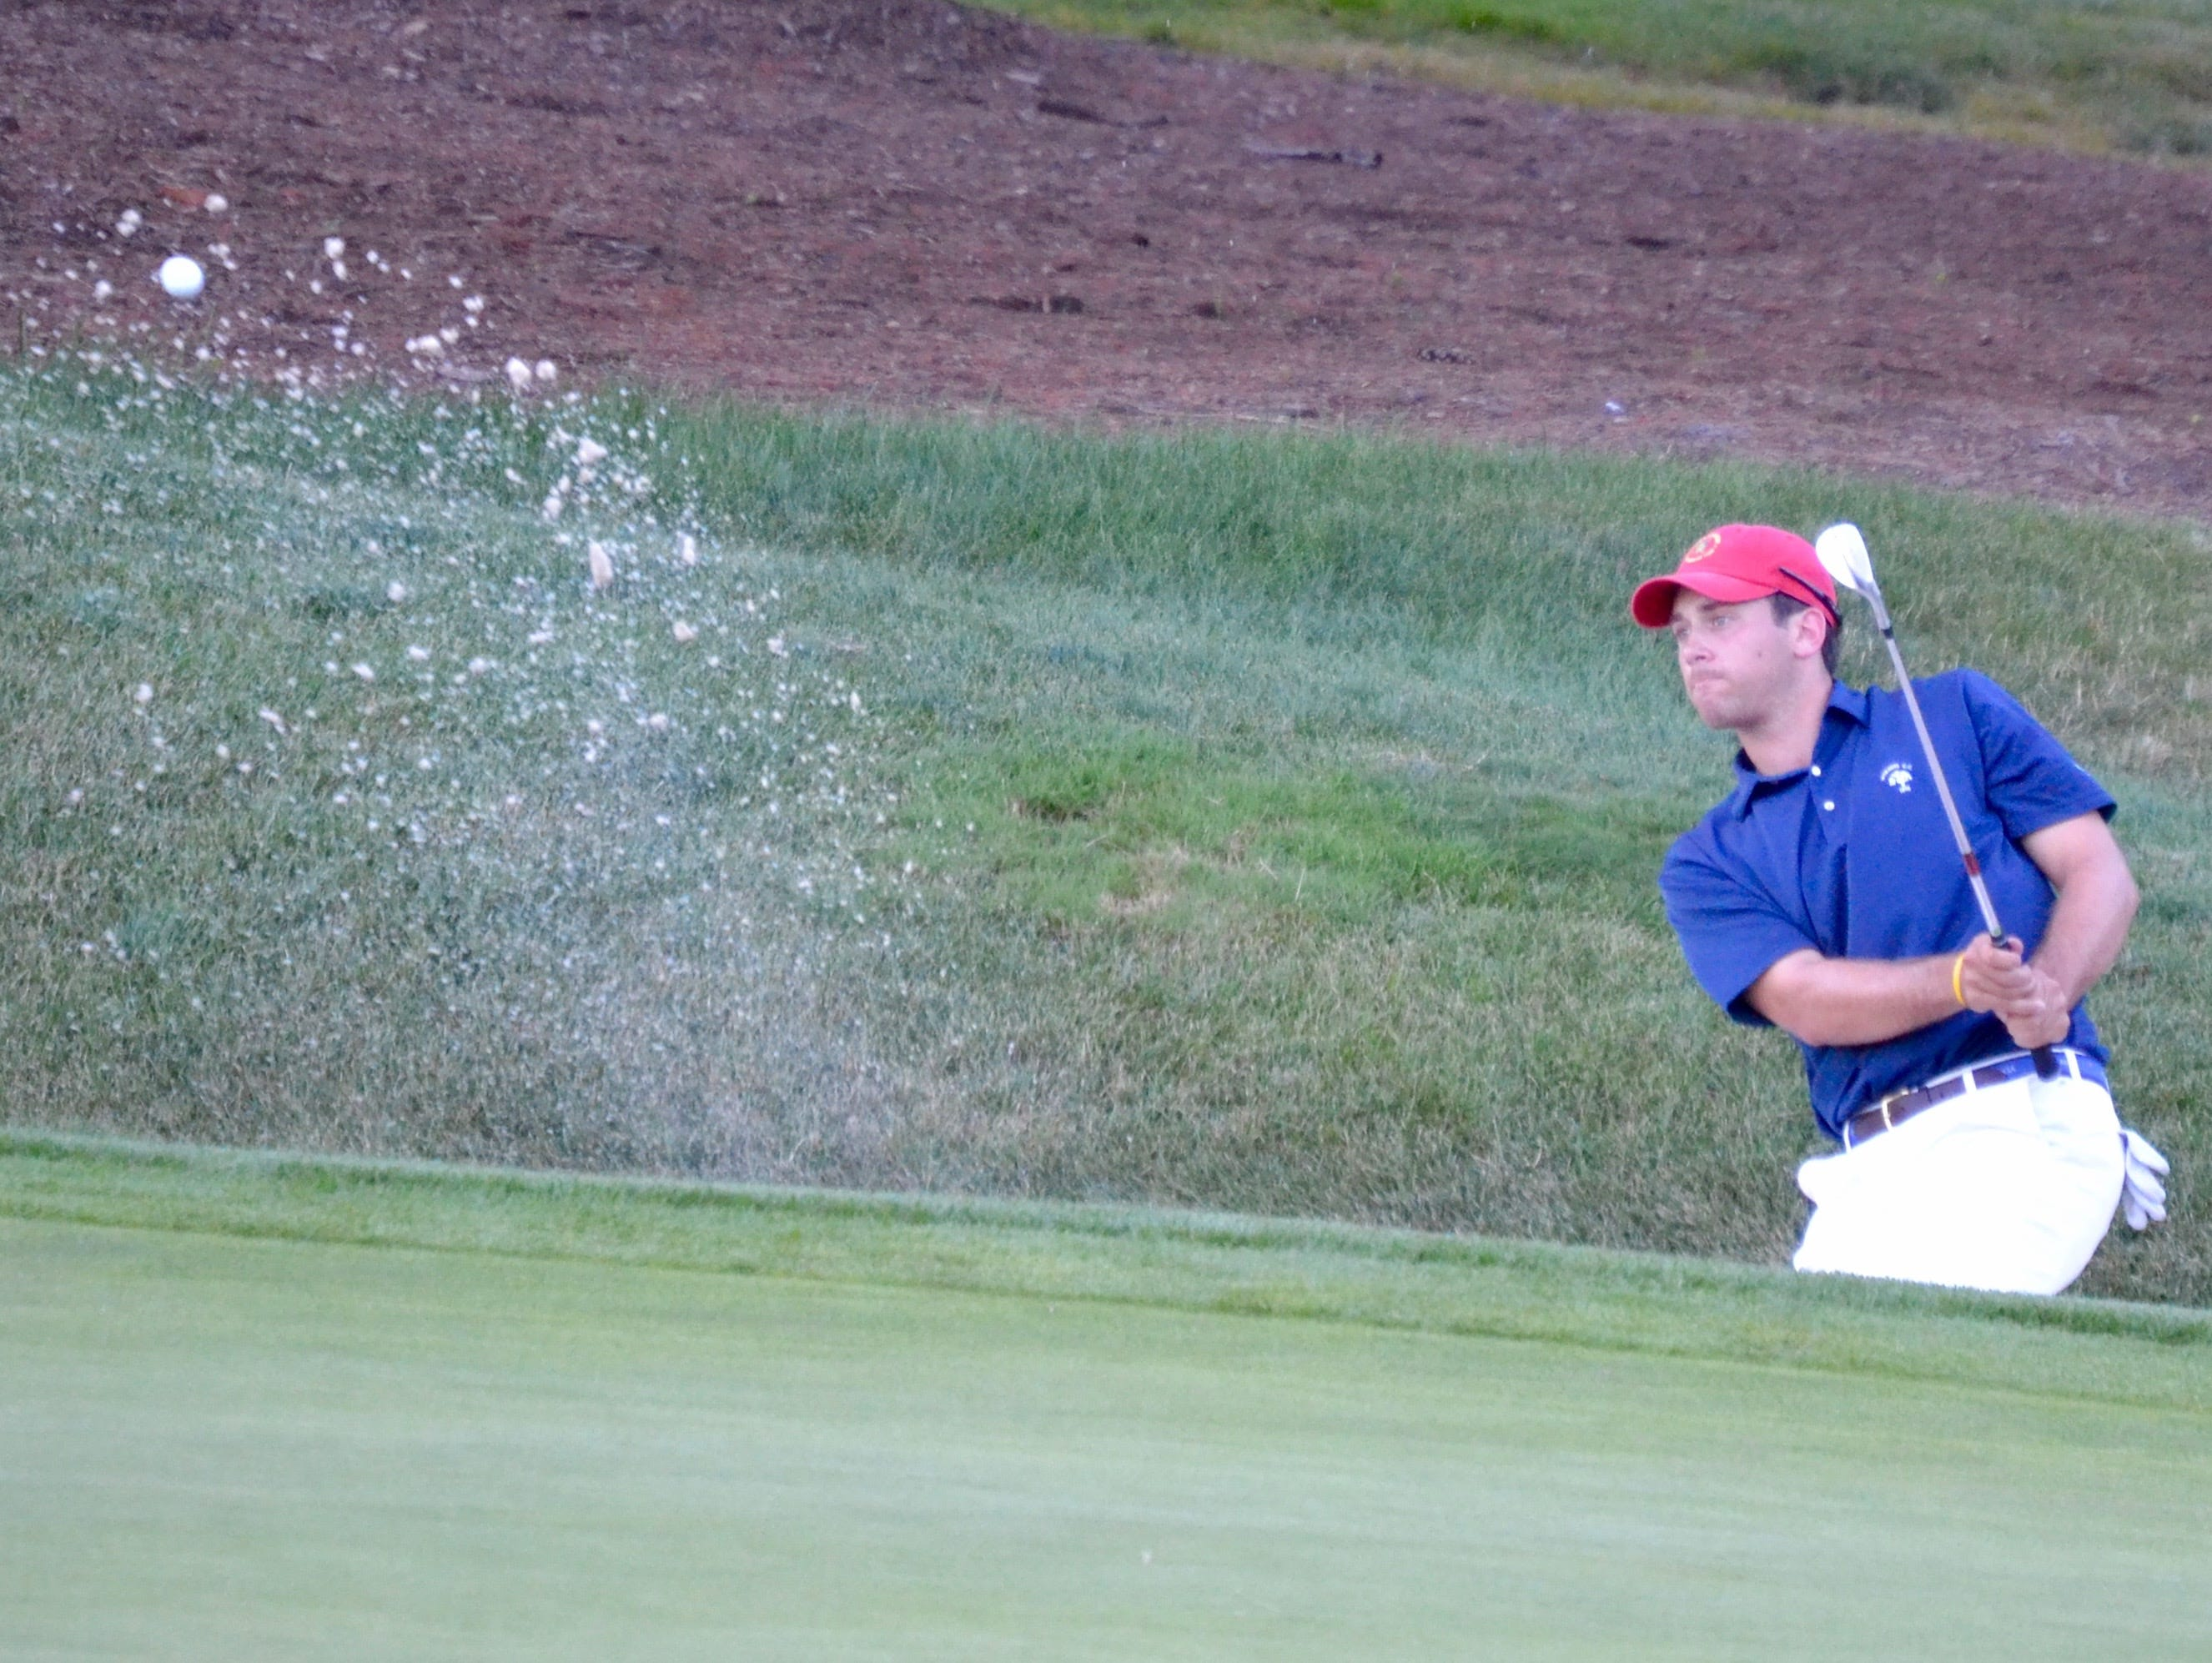 Century CC member Sam Bernstein escapes a greenside bunker during a quarterfinal match at the 113th Met Amateur. He missed the 10-footer to extend the match and fell to Ryan Snouffer.